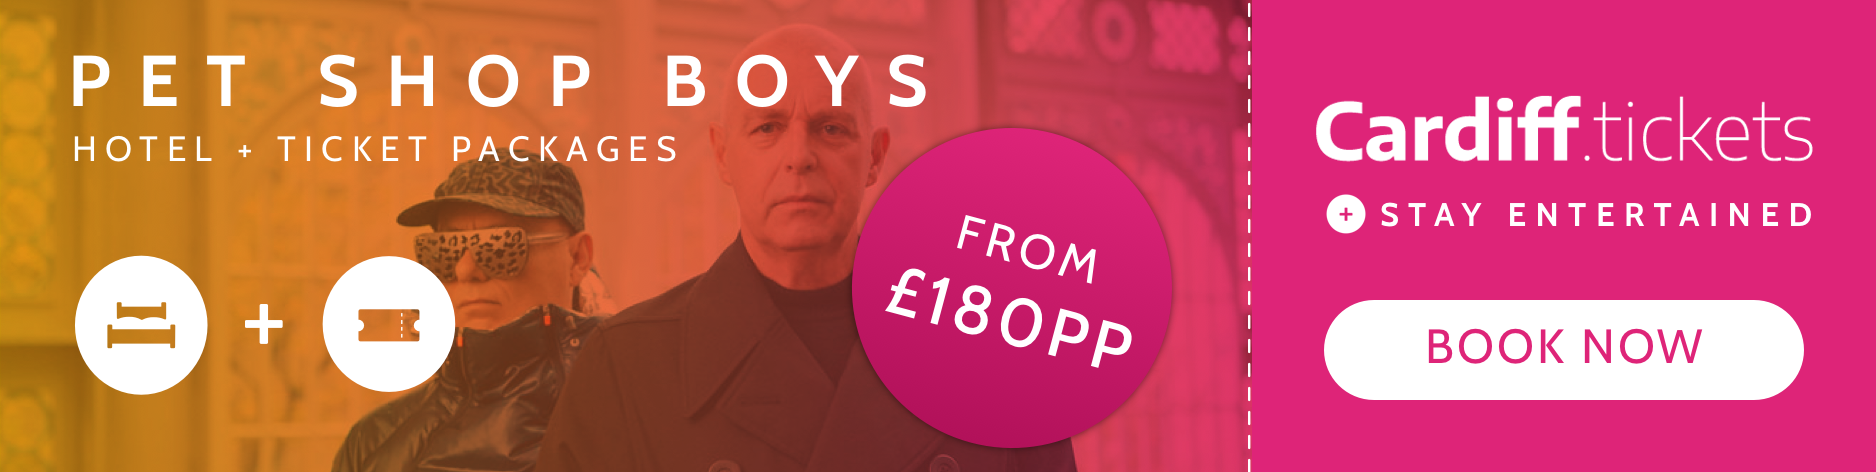 Pet Shop Boys tickets and hotel package